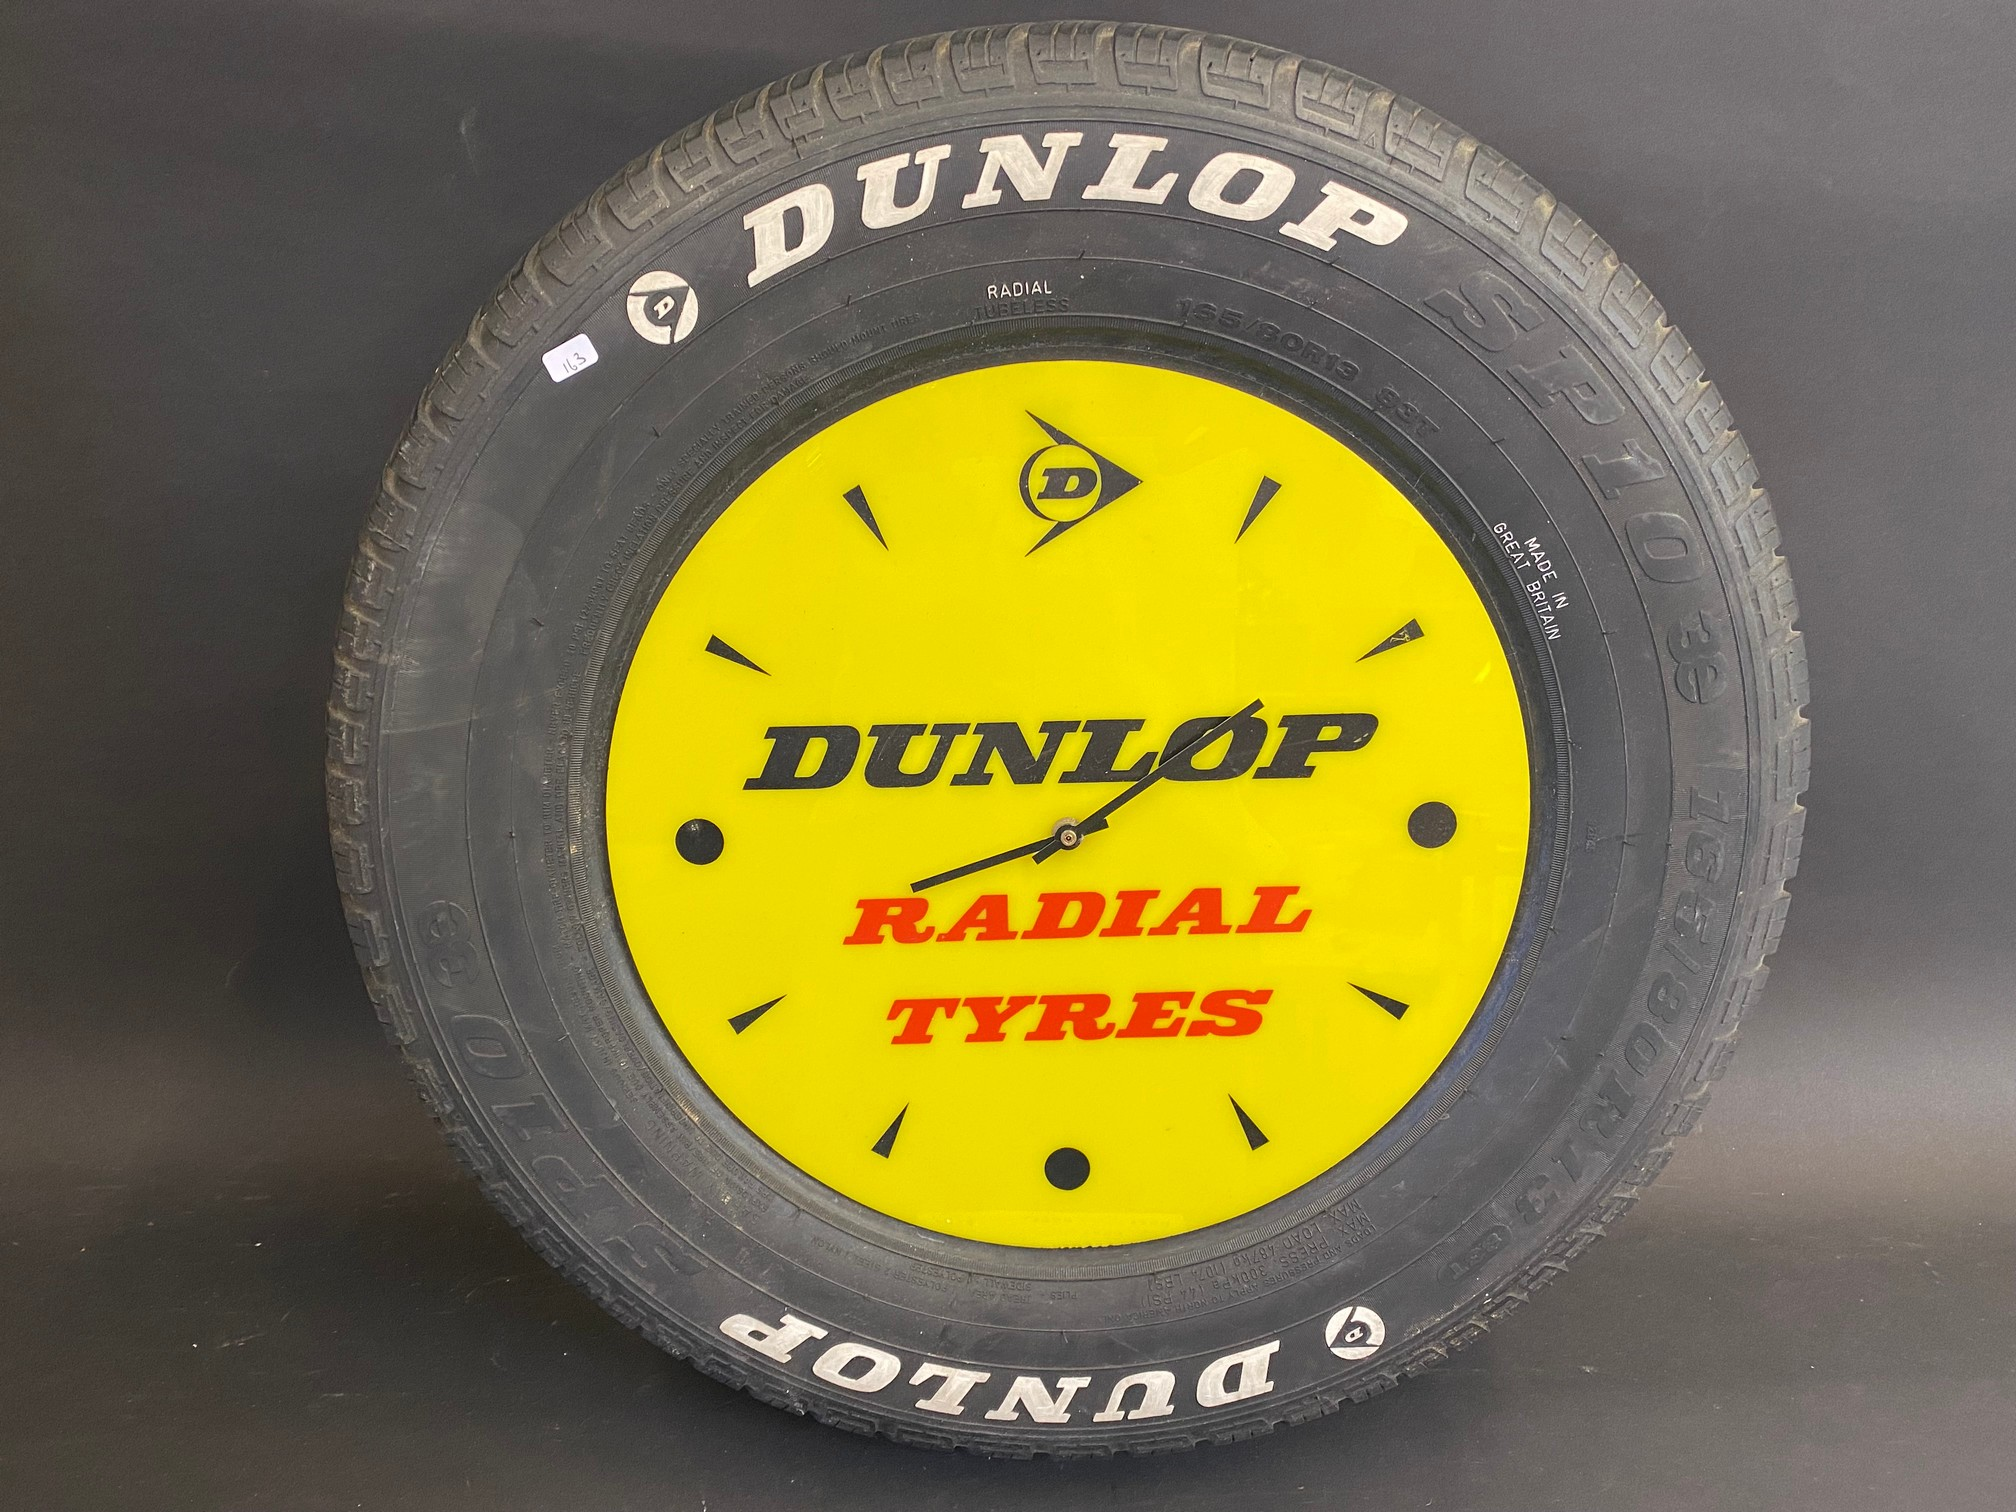 """A quirky Dunlop Radial Tyres perspex advertising clock set within a full size car tyre, 22 1/2"""""""